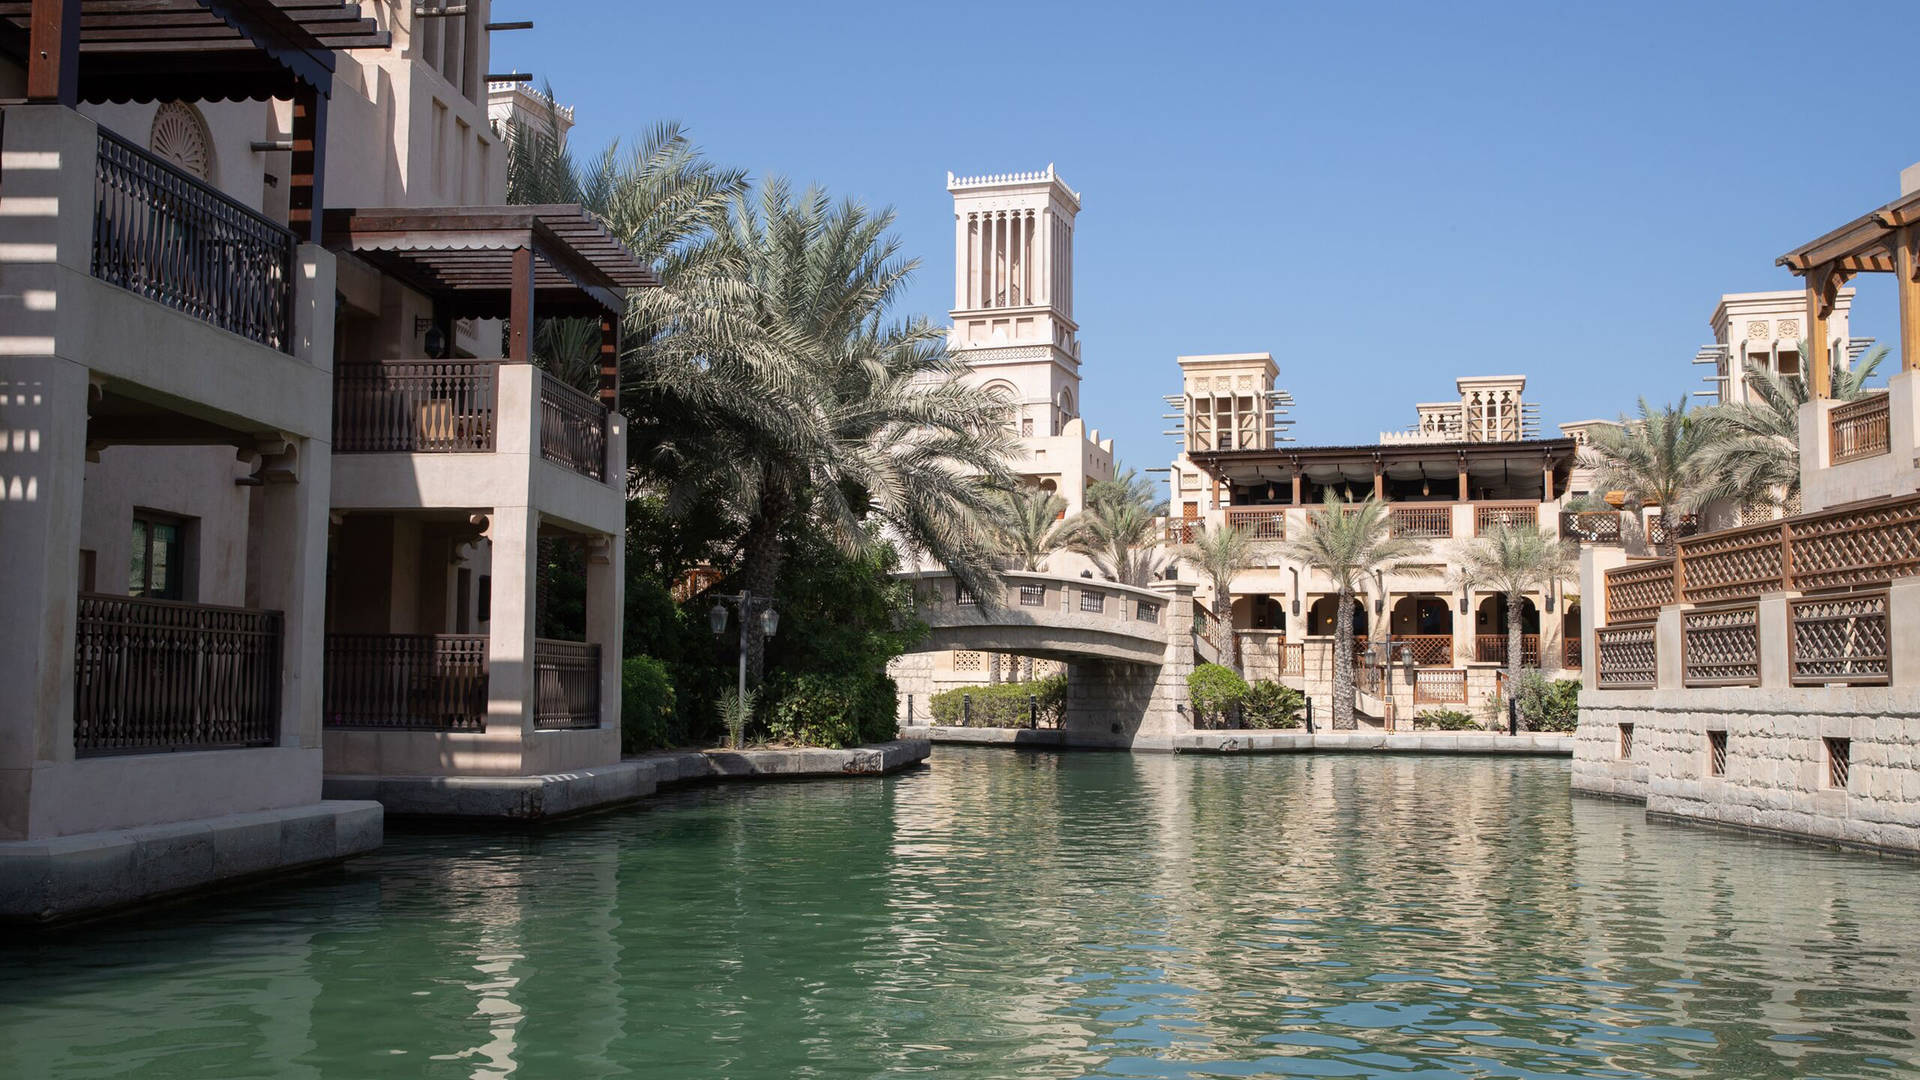 Jumeirah Dar Al Masyaf's waterways